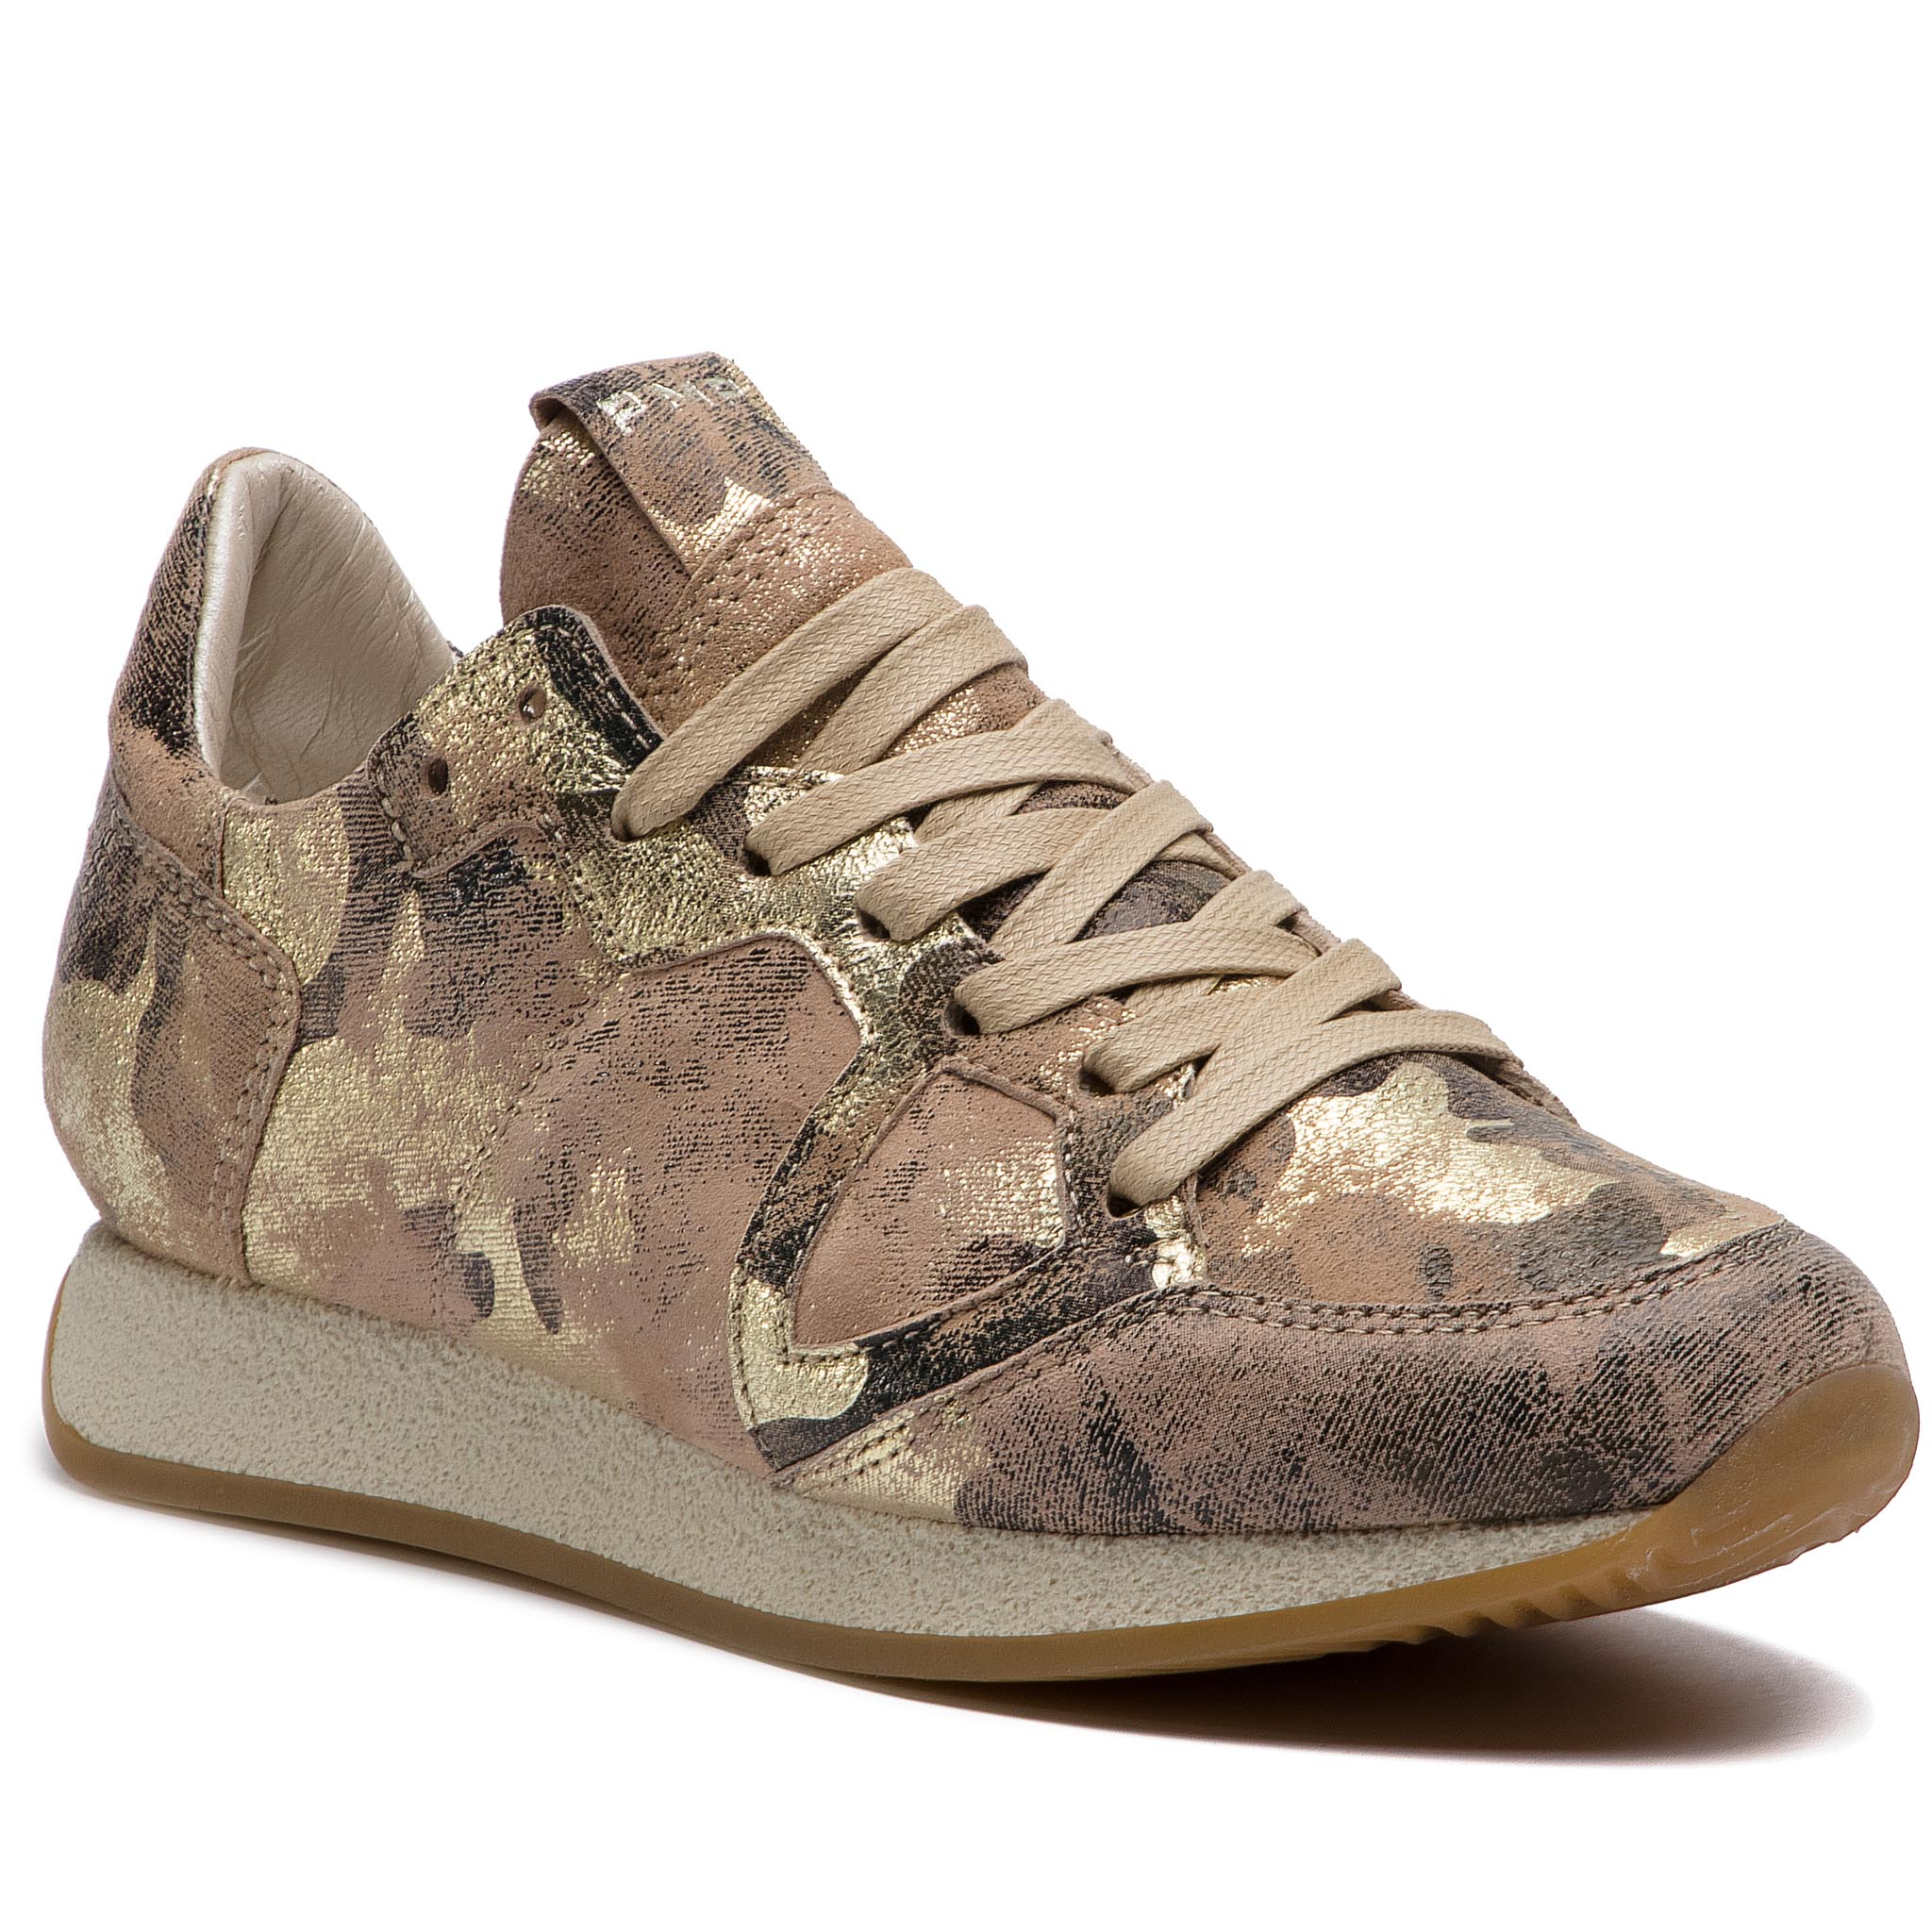 Sneakers PHILIPPE MODEL - Monaco MNLD CM02 Camouflage Metal Beige Or